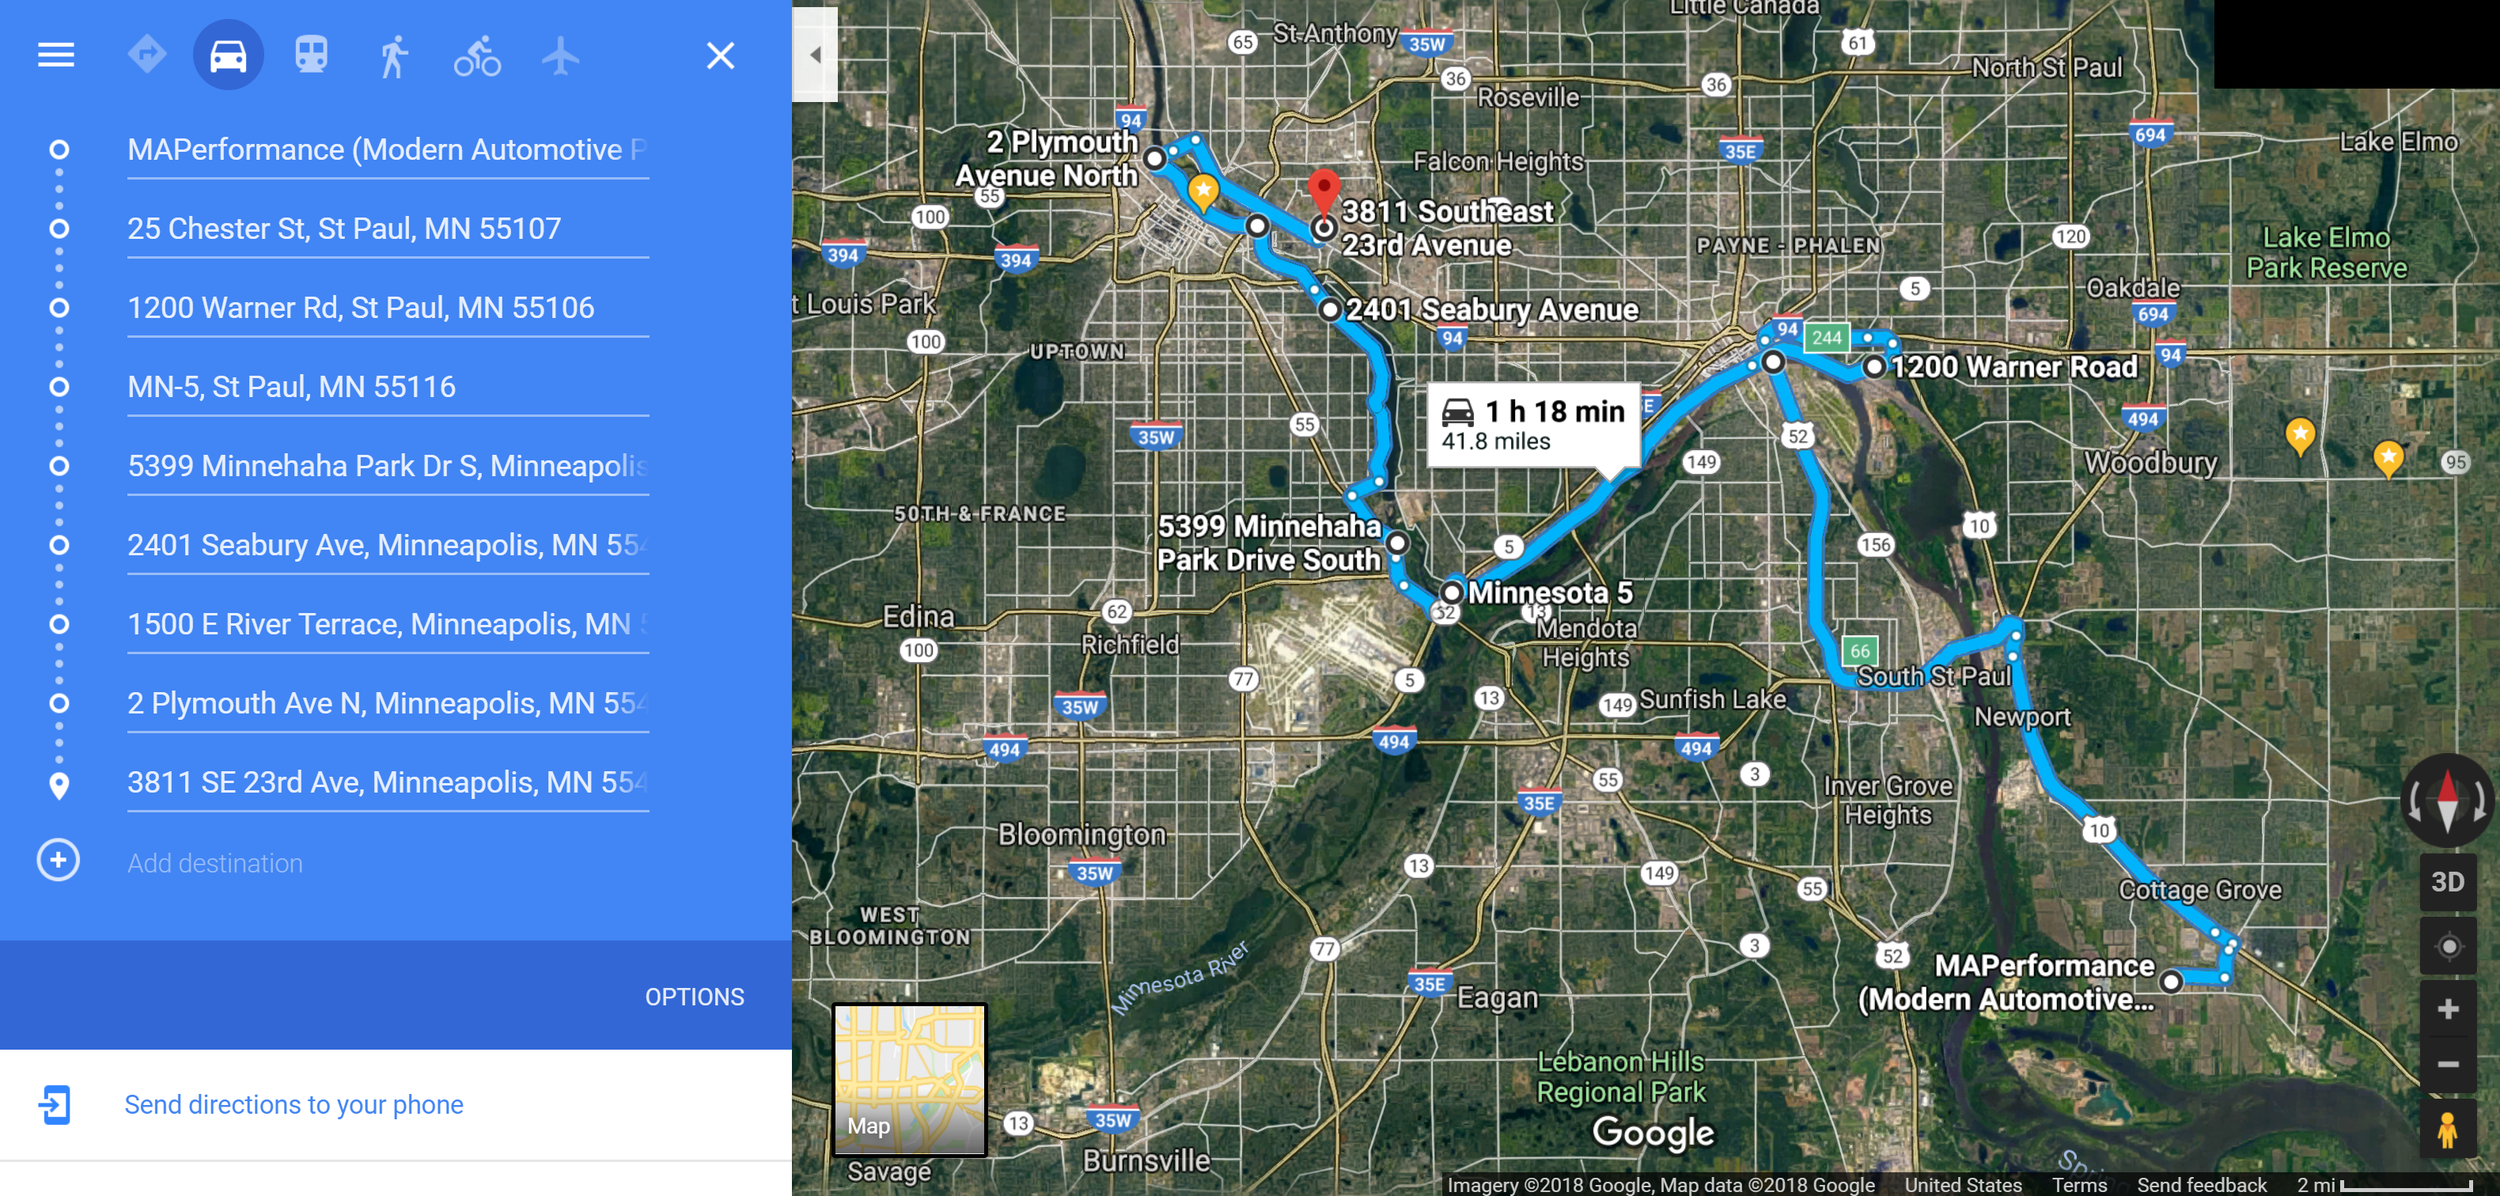 2018 Paul Walker Cruise Route V3.png